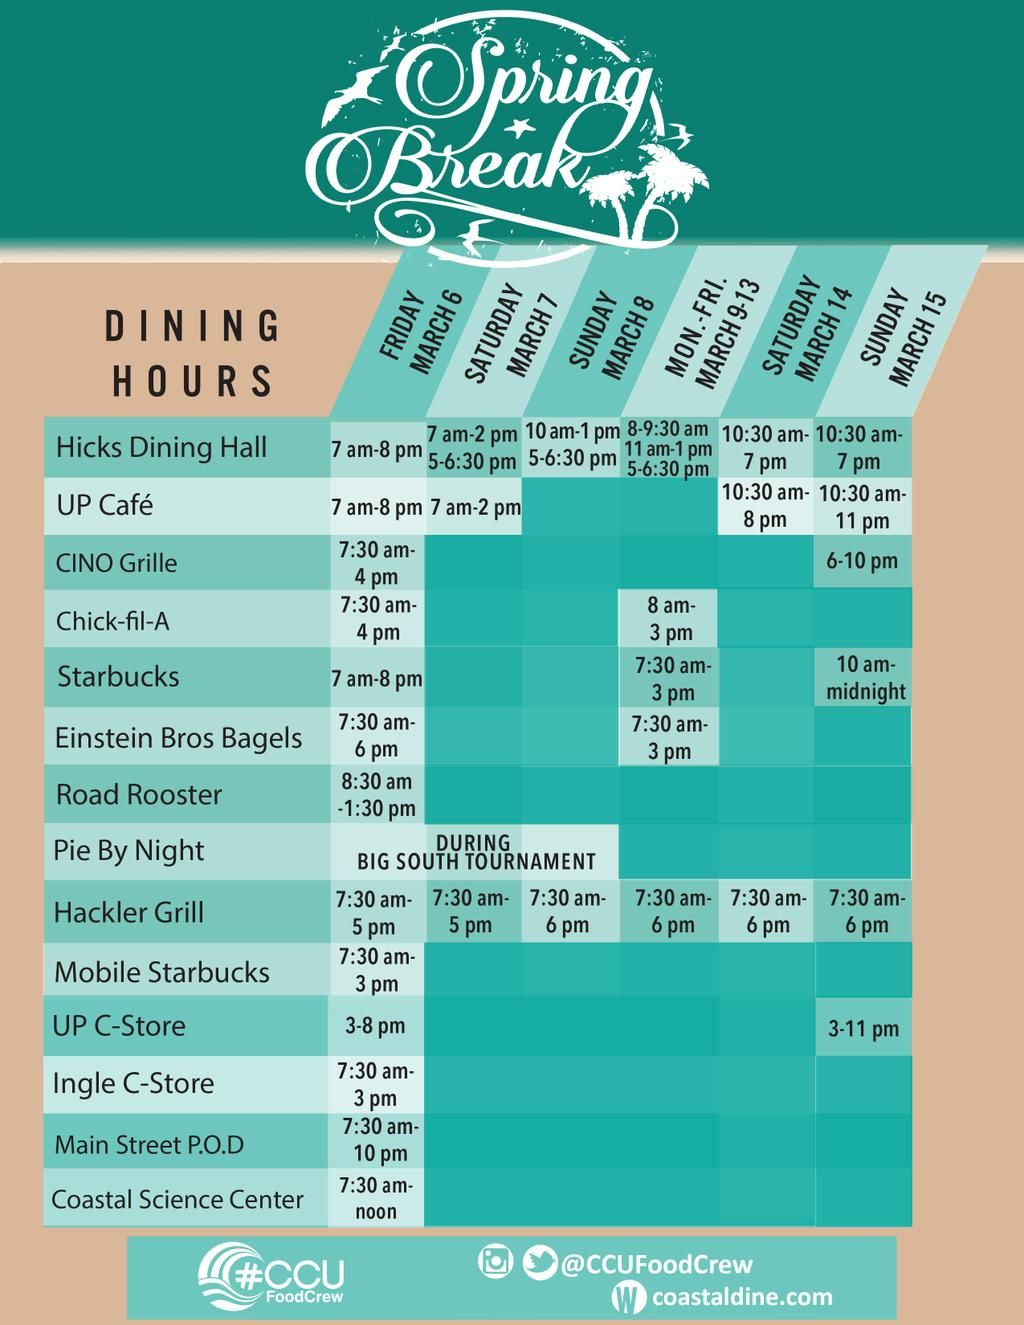 Ccufoodcrew spring break 2015 dining hours with images